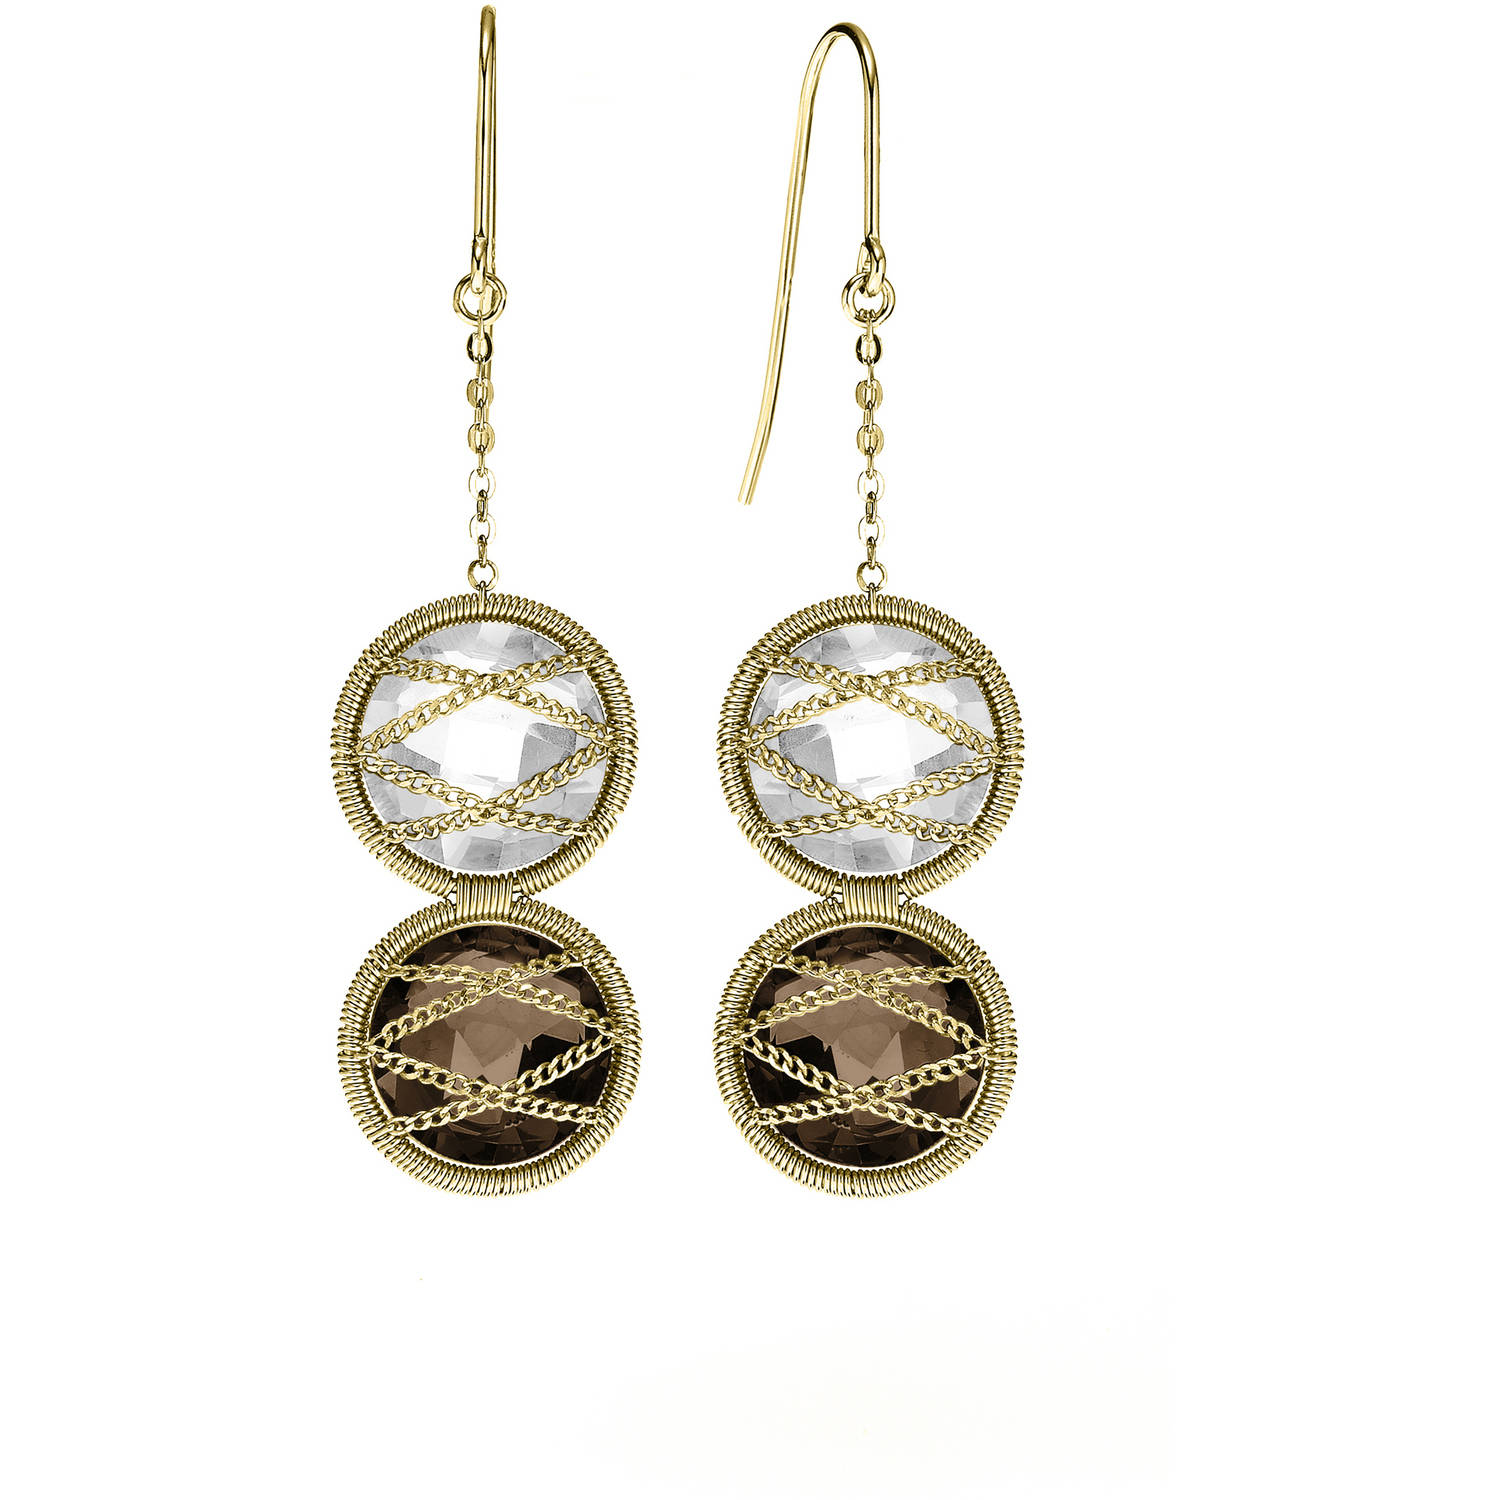 Image of 5th & Main 18kt Gold over Sterling Silver Hand-Wrapped Double Smokey Quartz Stone Earrings